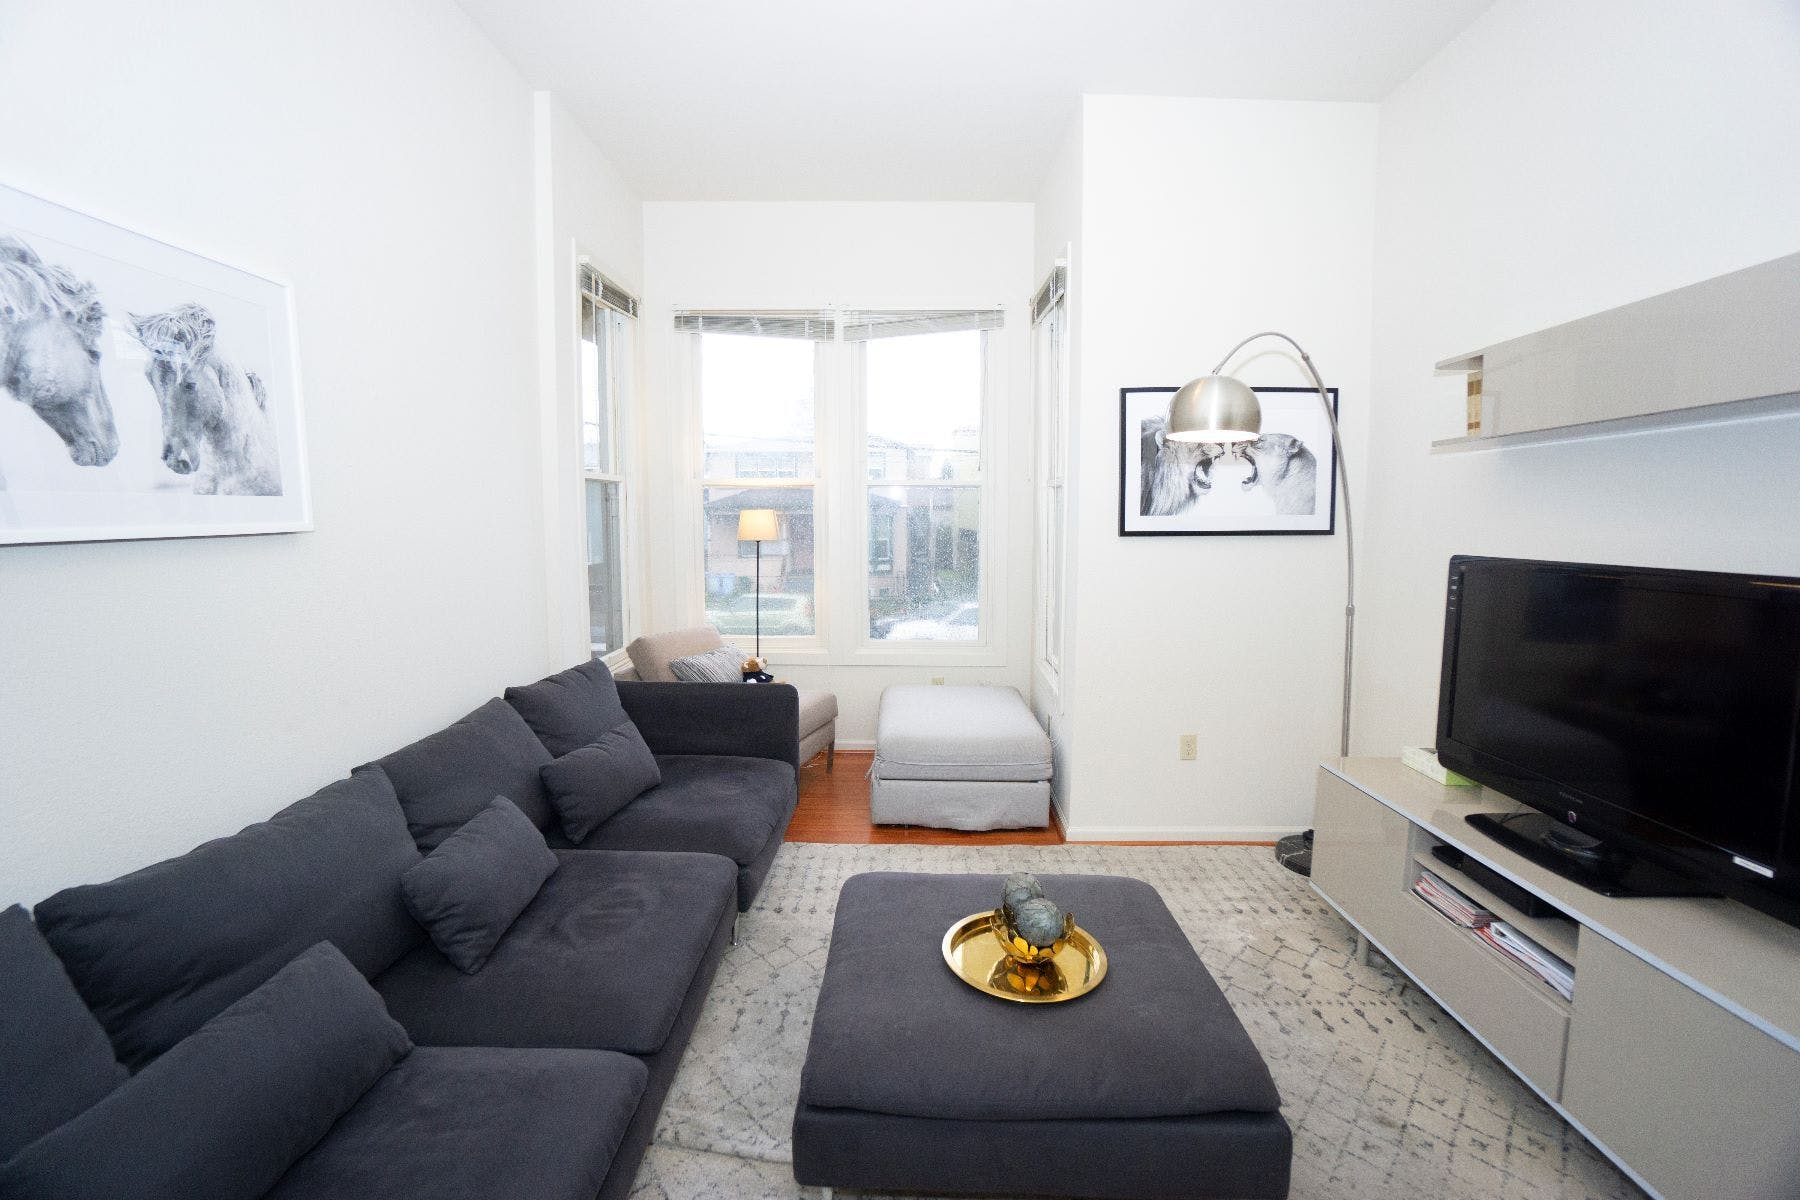 8 min Walk to Campus | Big & Modern House - Incl. Coworking